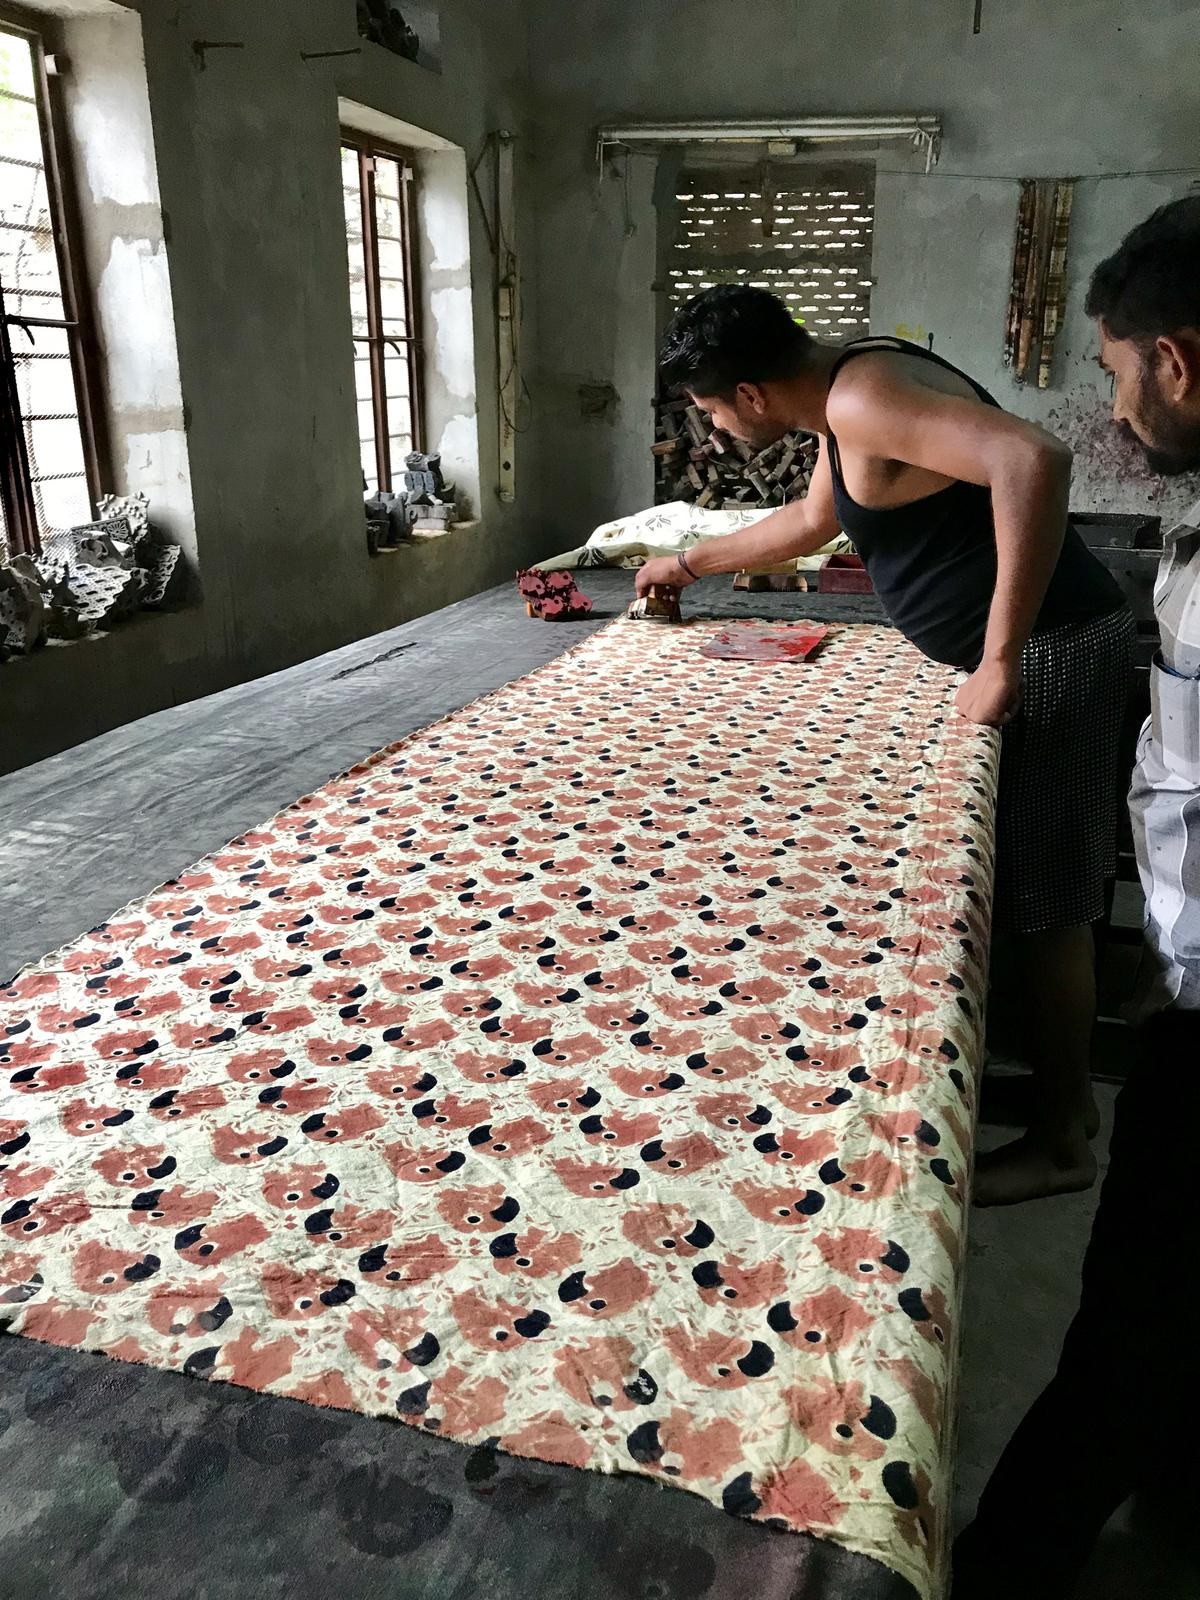 Parrot design being hand printed in Rajasthan, India